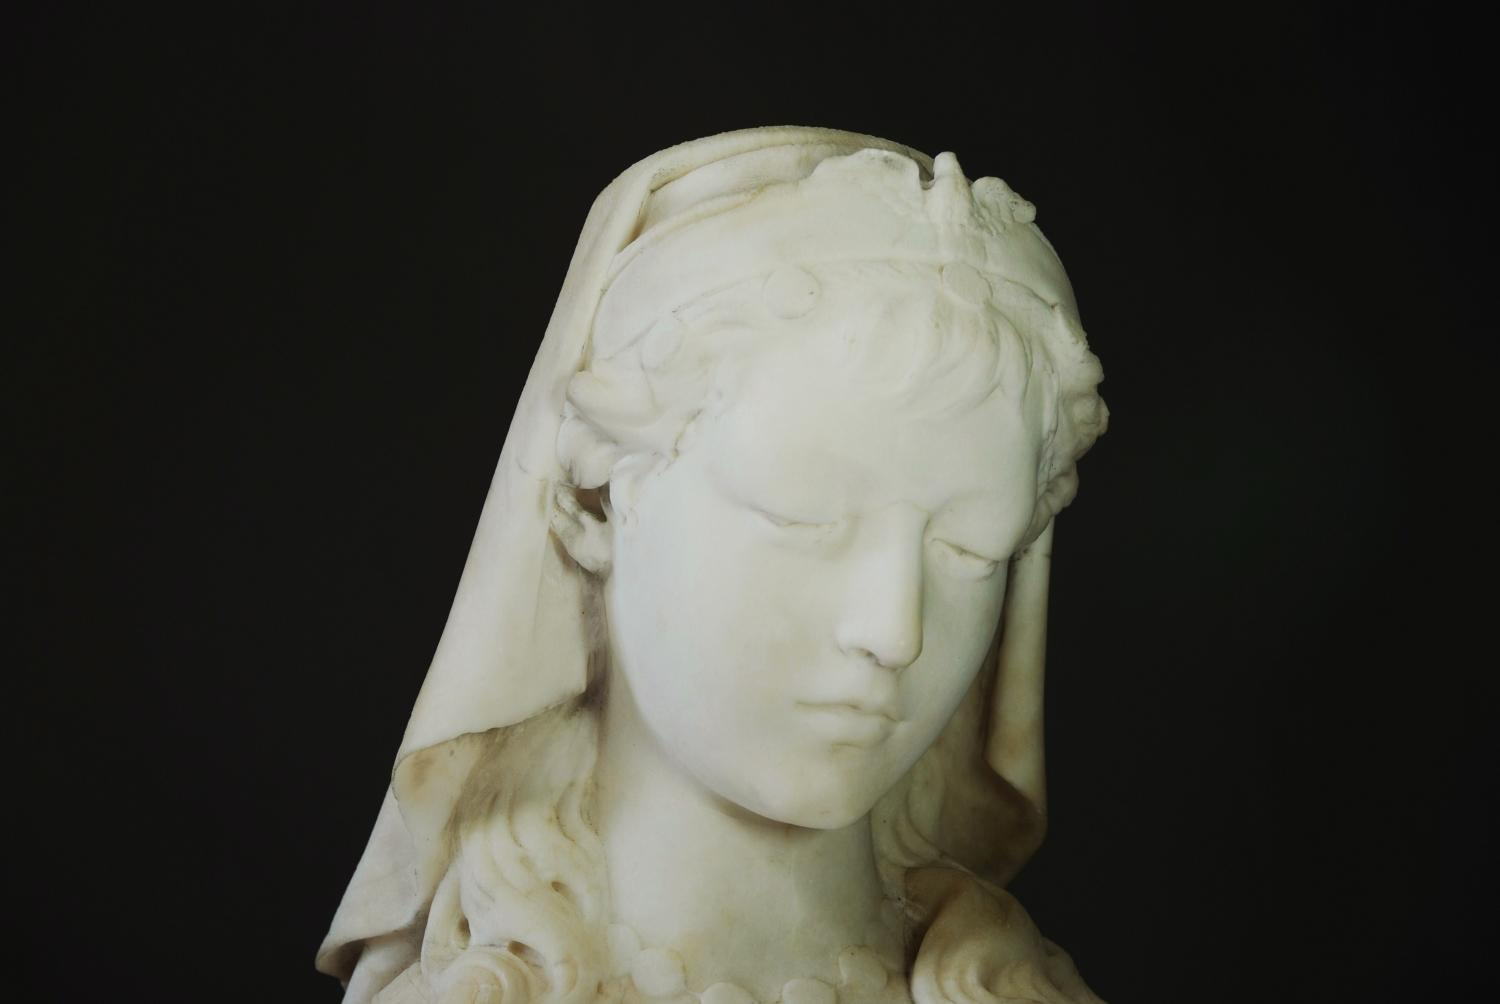 19thc alabaster bust, 'Rose of Sharon'